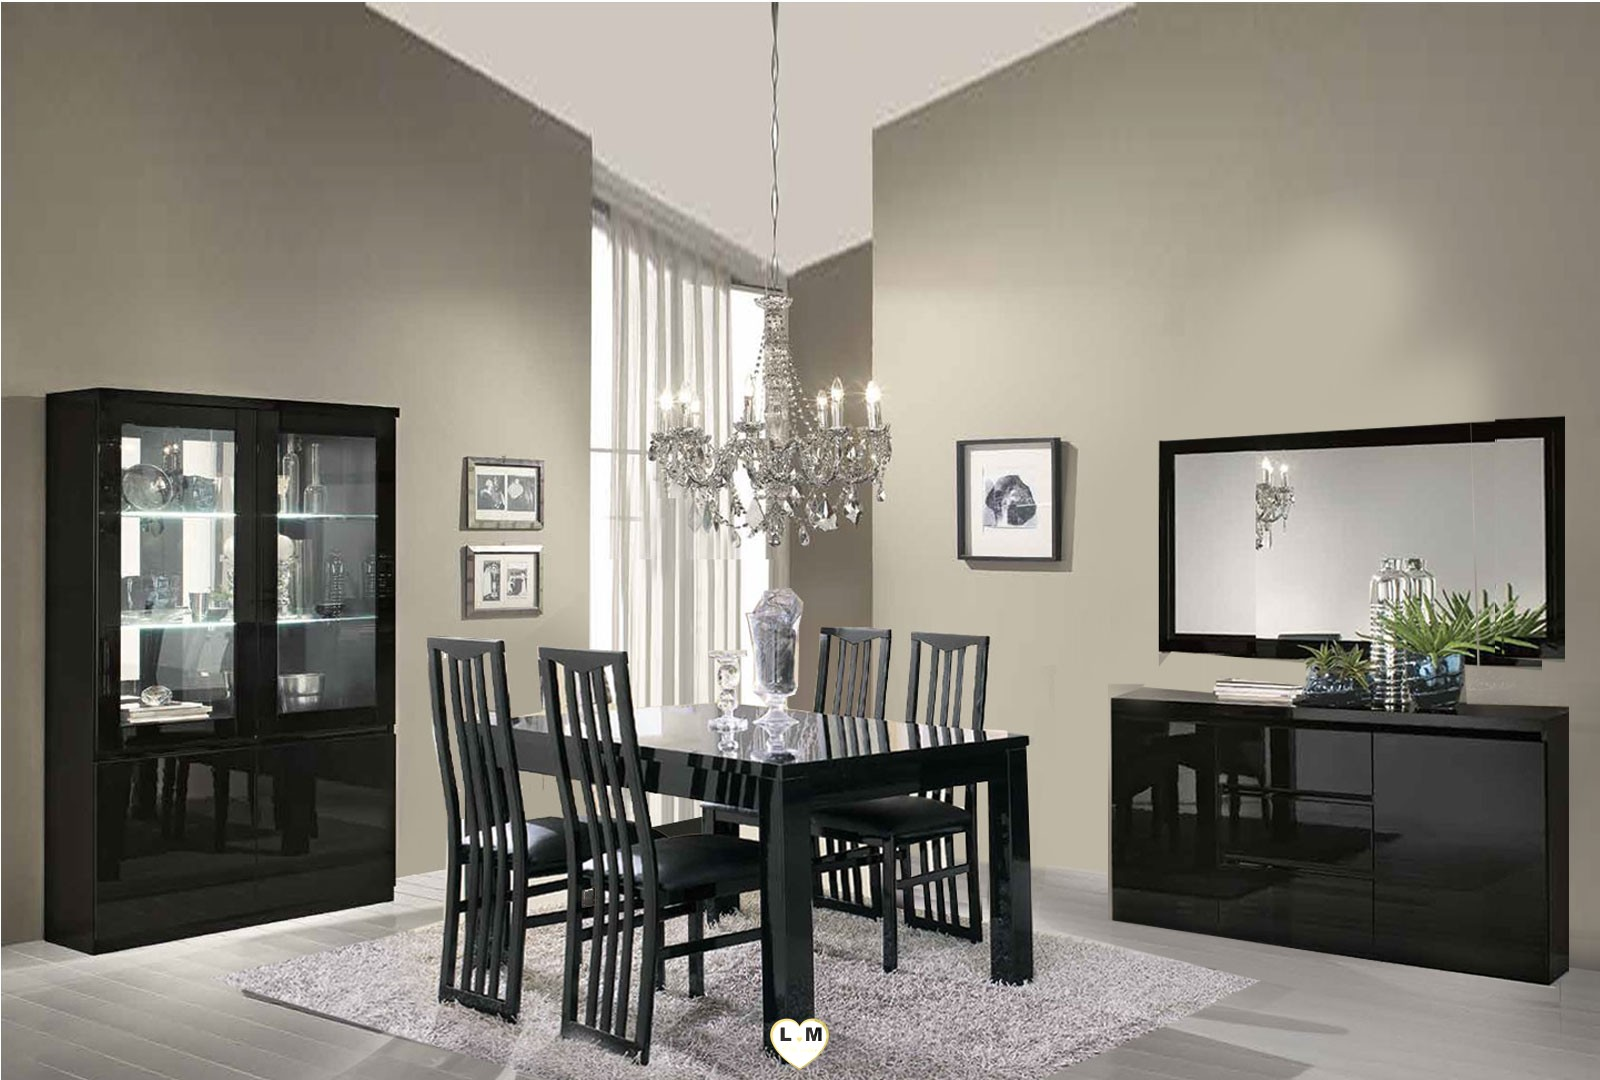 rivazzura laque noir sejour salle a manger moderne le. Black Bedroom Furniture Sets. Home Design Ideas